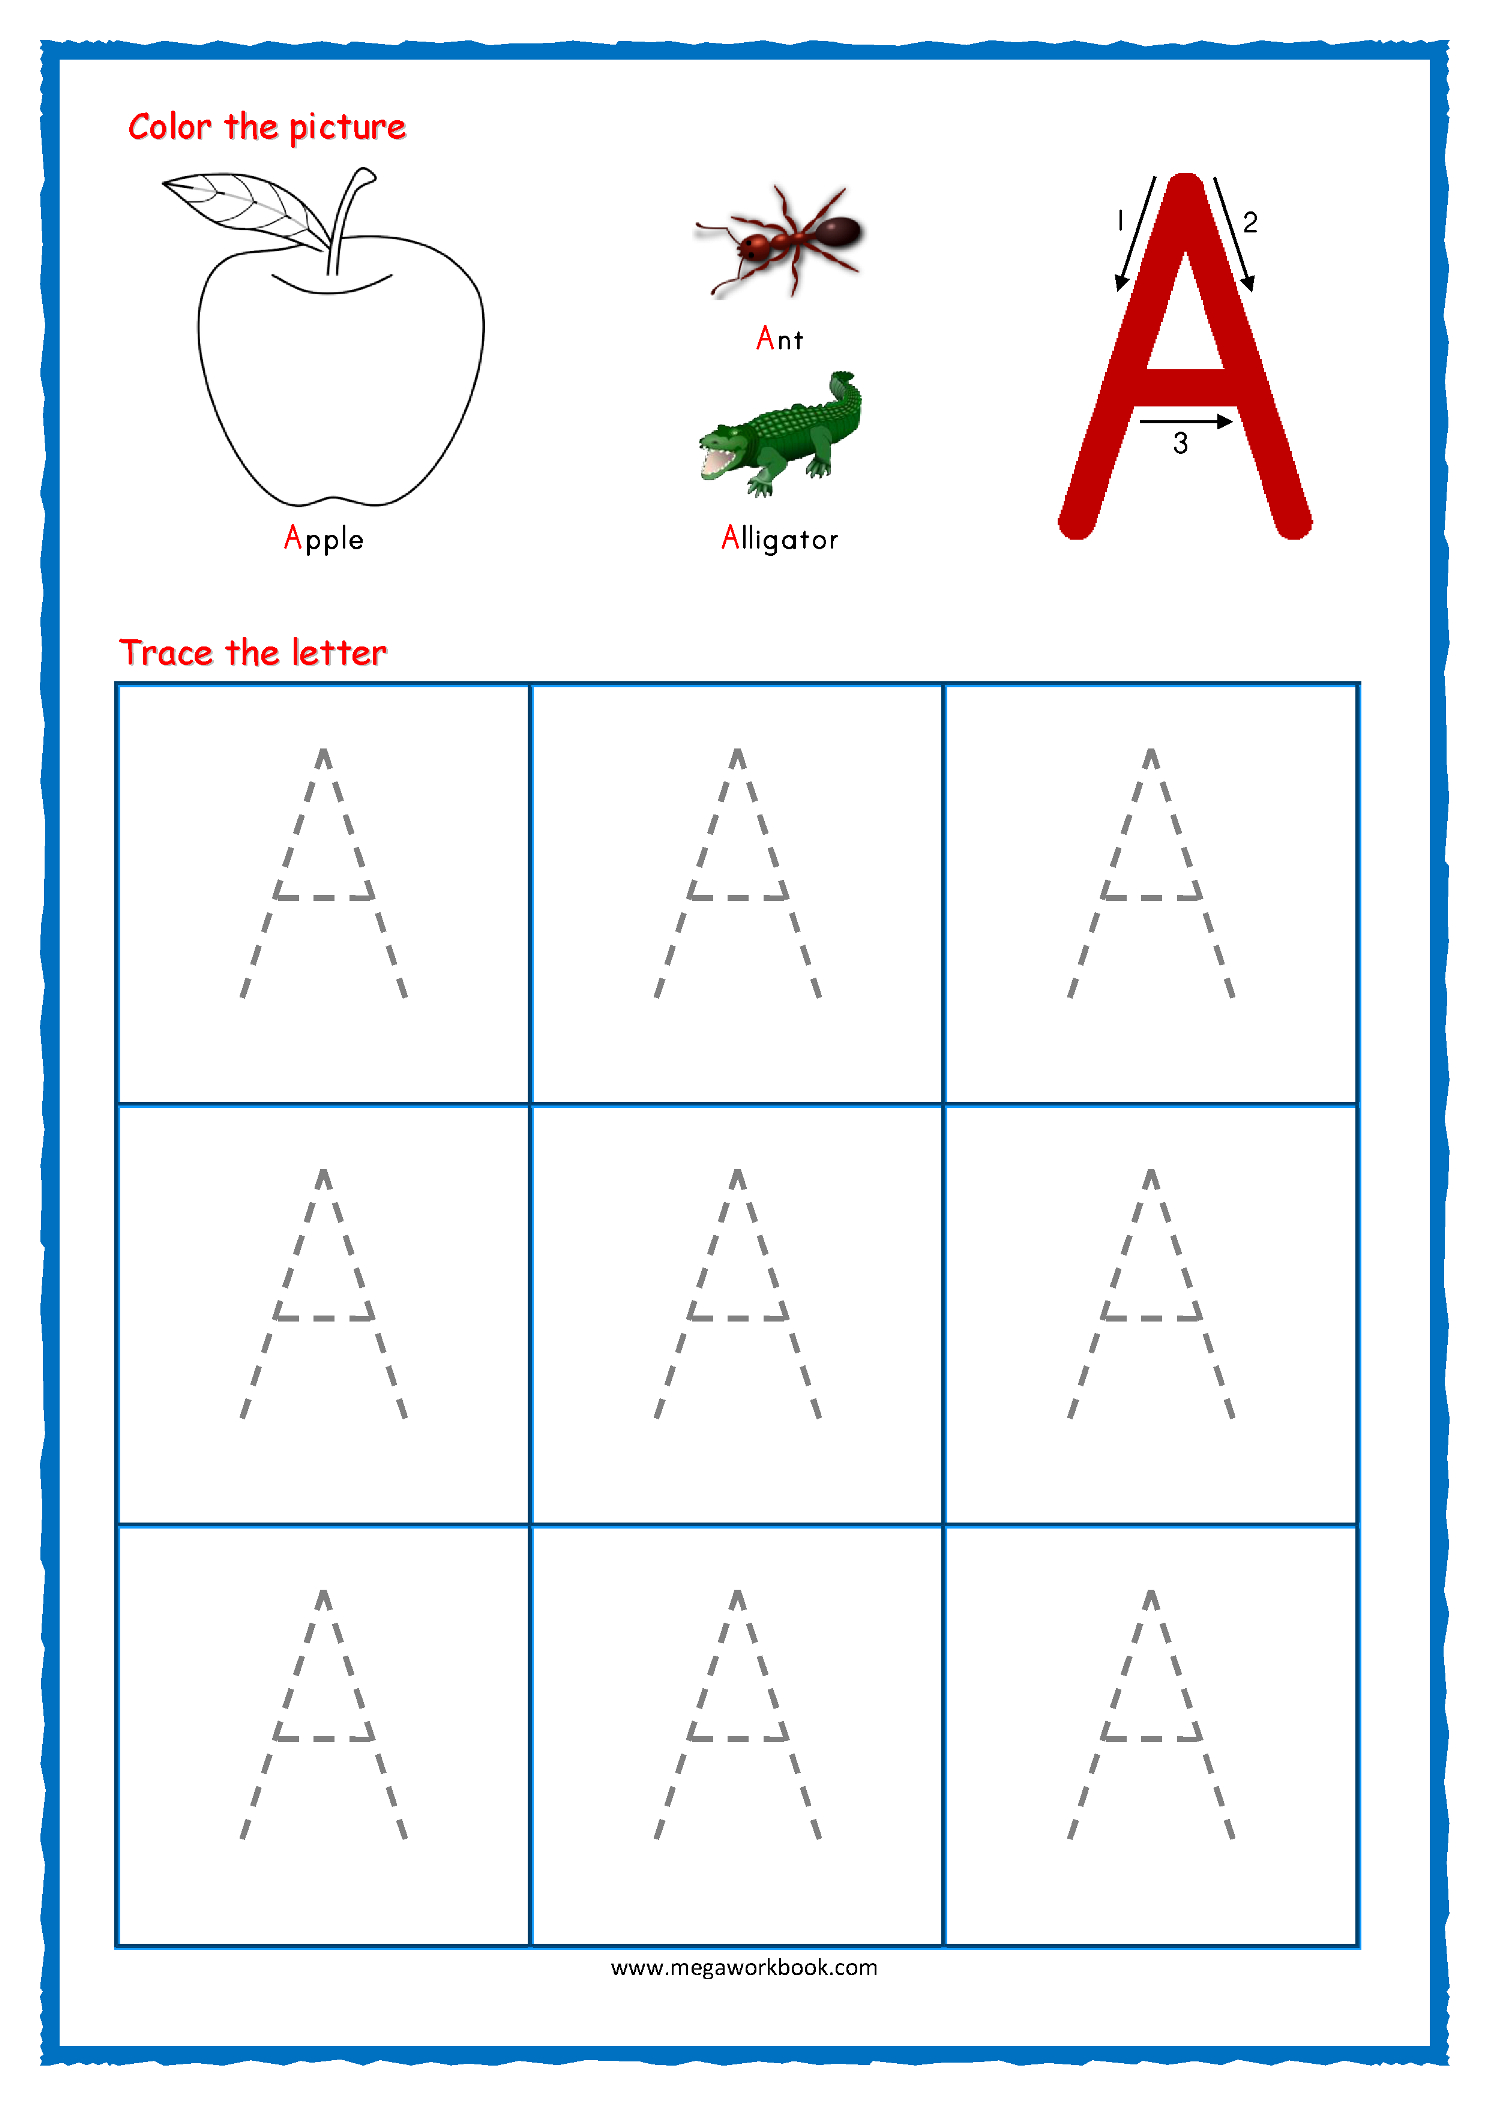 Coloring Book : Coloring Book Alphabet Tracing Worksheets in Tracing Letters Worksheets For Toddlers